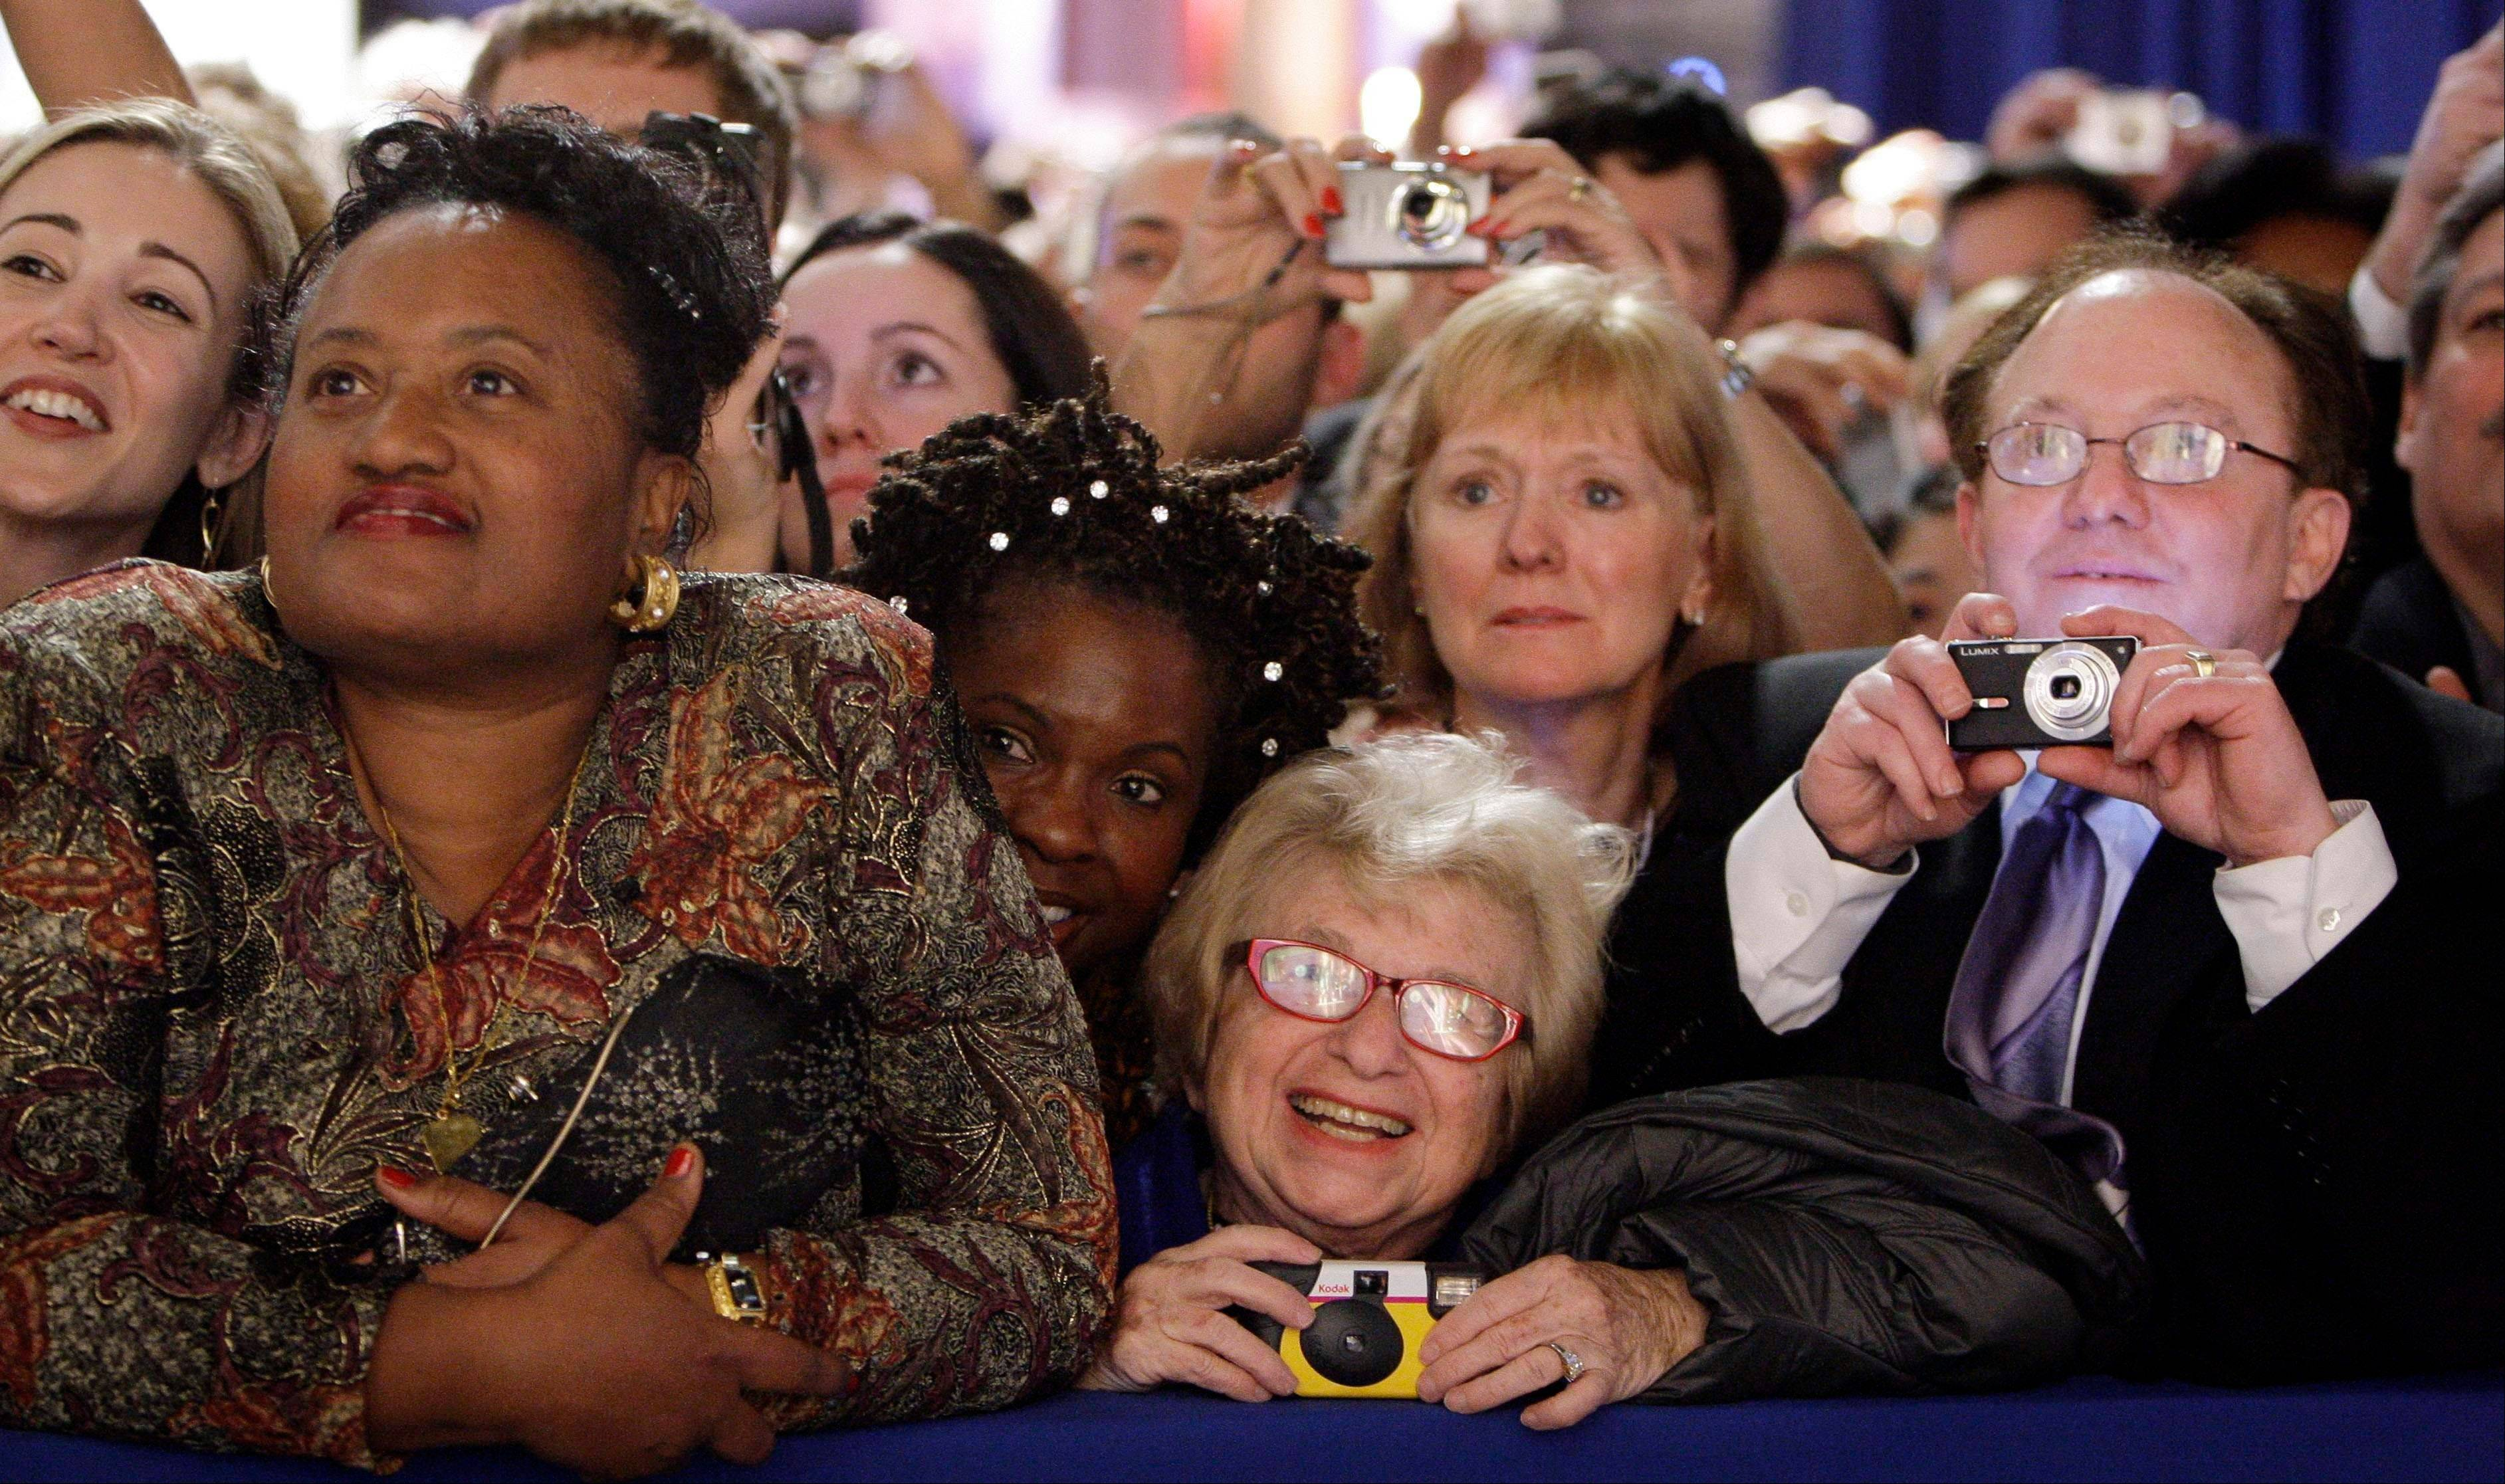 Dr. Ruth Westheimer, center, watches President Barack Obama and the first lady at an inauguration event in 2009. The sideline events throughout inauguration weekend are the big draws for advocates and lobbyists looking to rub elbows with lawmakers and administration officials. The events at restaurants and hotels, museums and mansions are opportunities for anyone willing to write a check to turn a night out into a chance to build a Rolodex of Washington's power brokers.